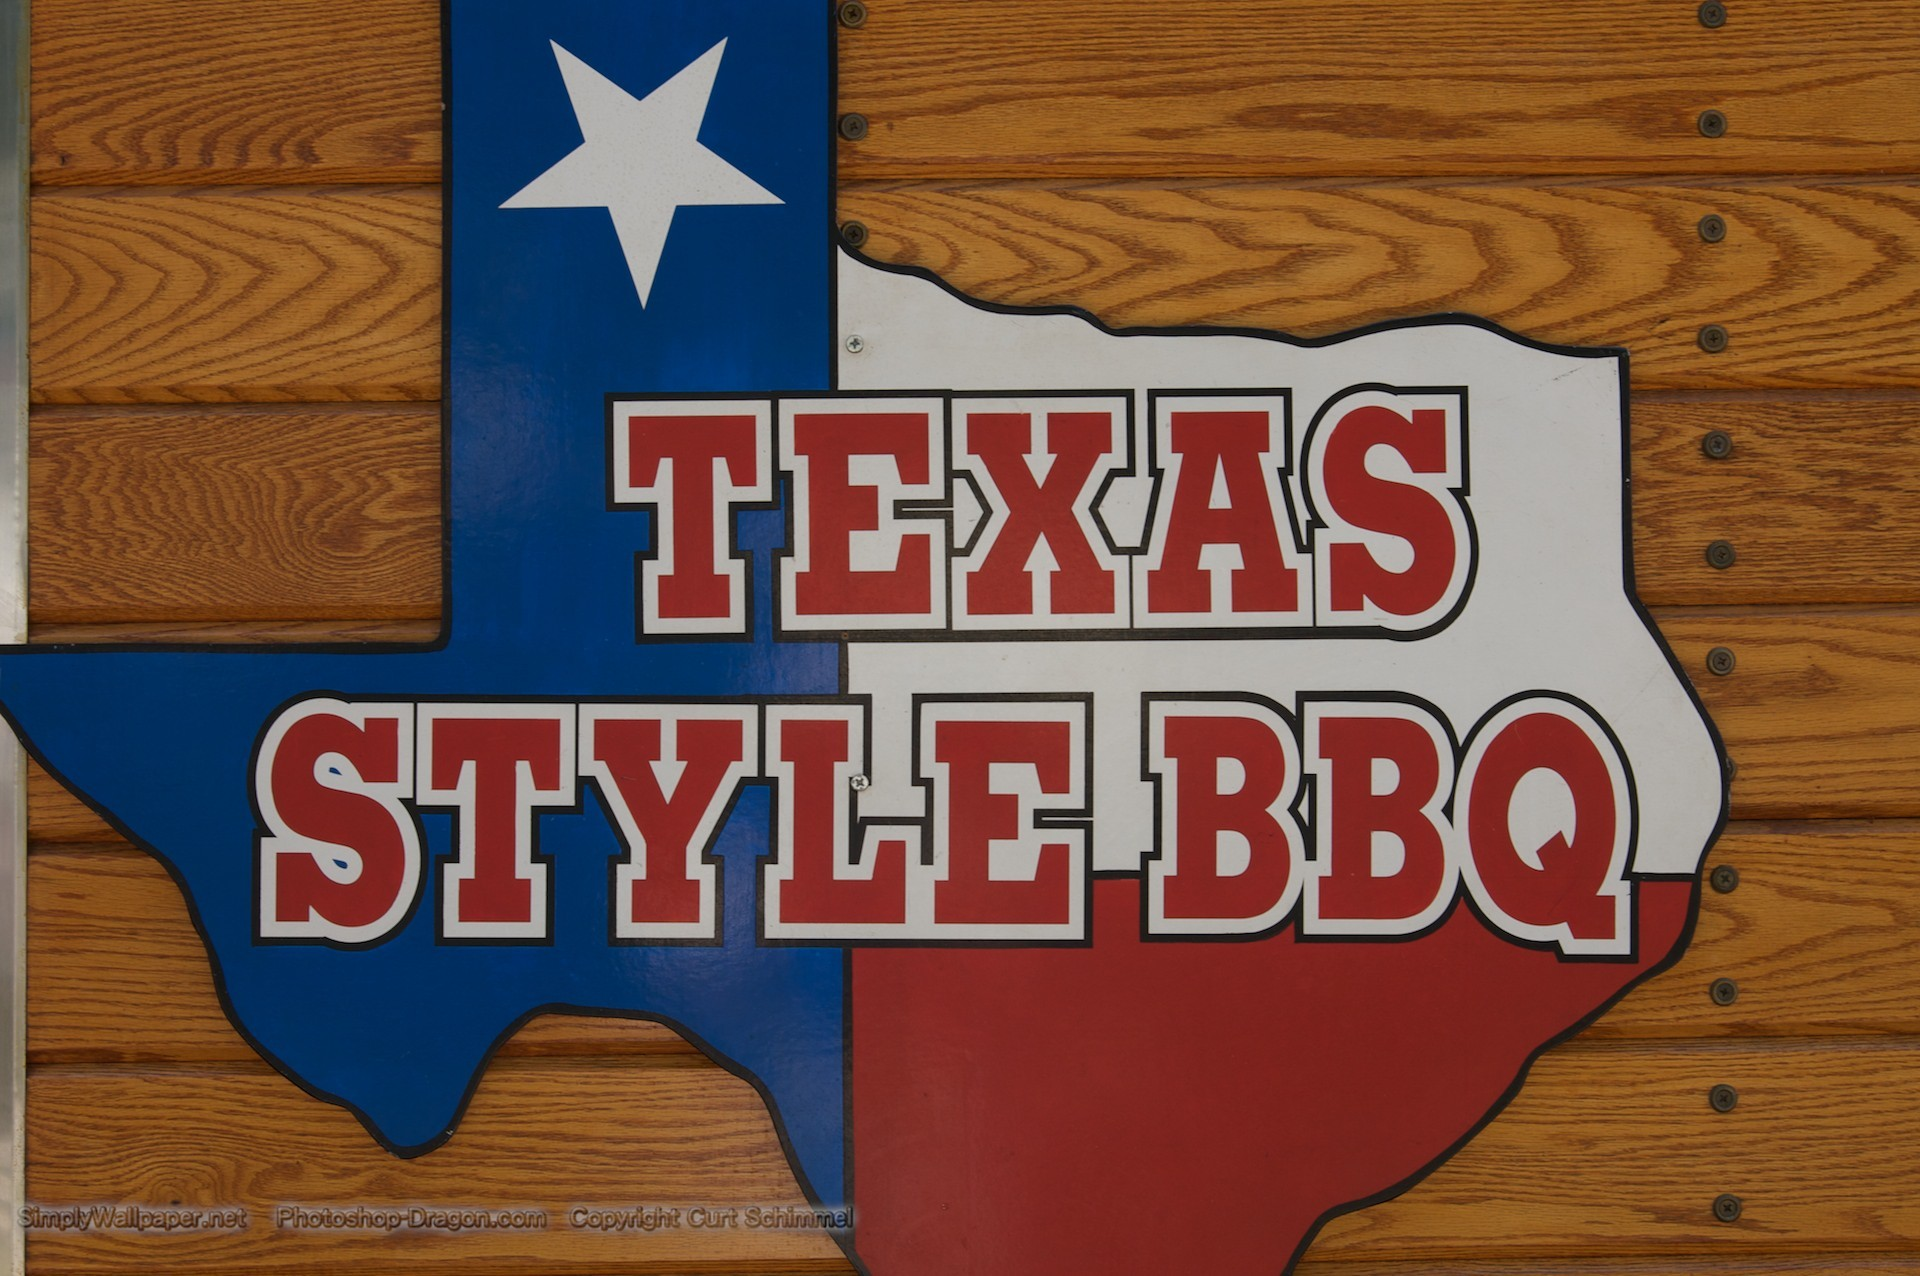 1920x1276 Texas BBQ | Texas Style BBQ wallpaper - Click picture for high resolution  HD .